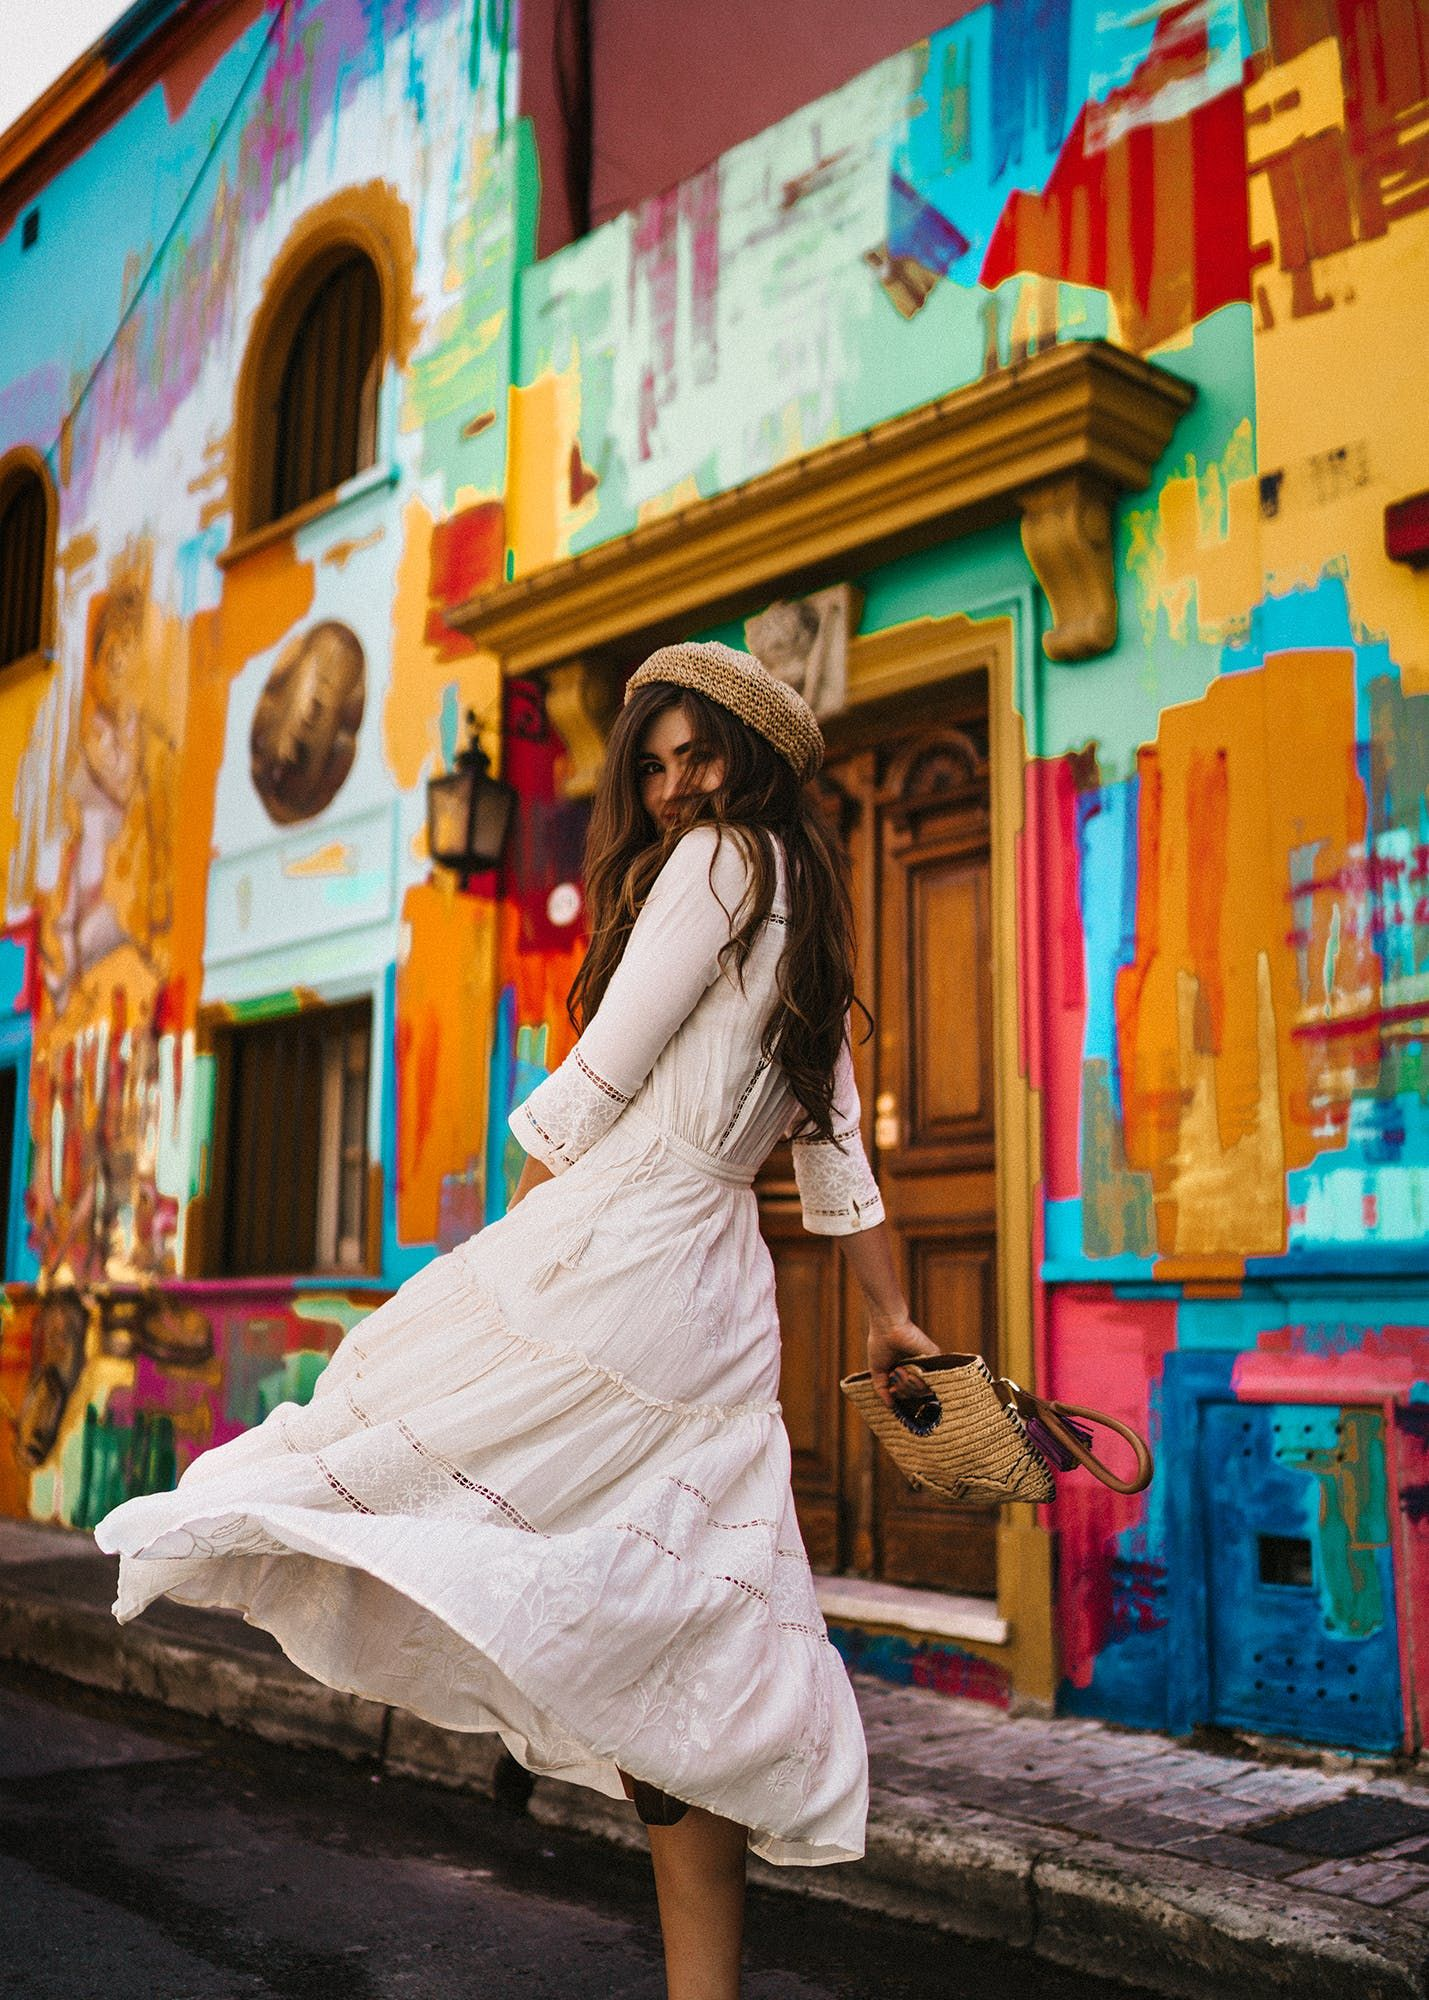 Photo Guide The Top 19 Instagrammable Places In Buenos Aires Away Lands Local Travel Buenos Aires Argentina Argentina